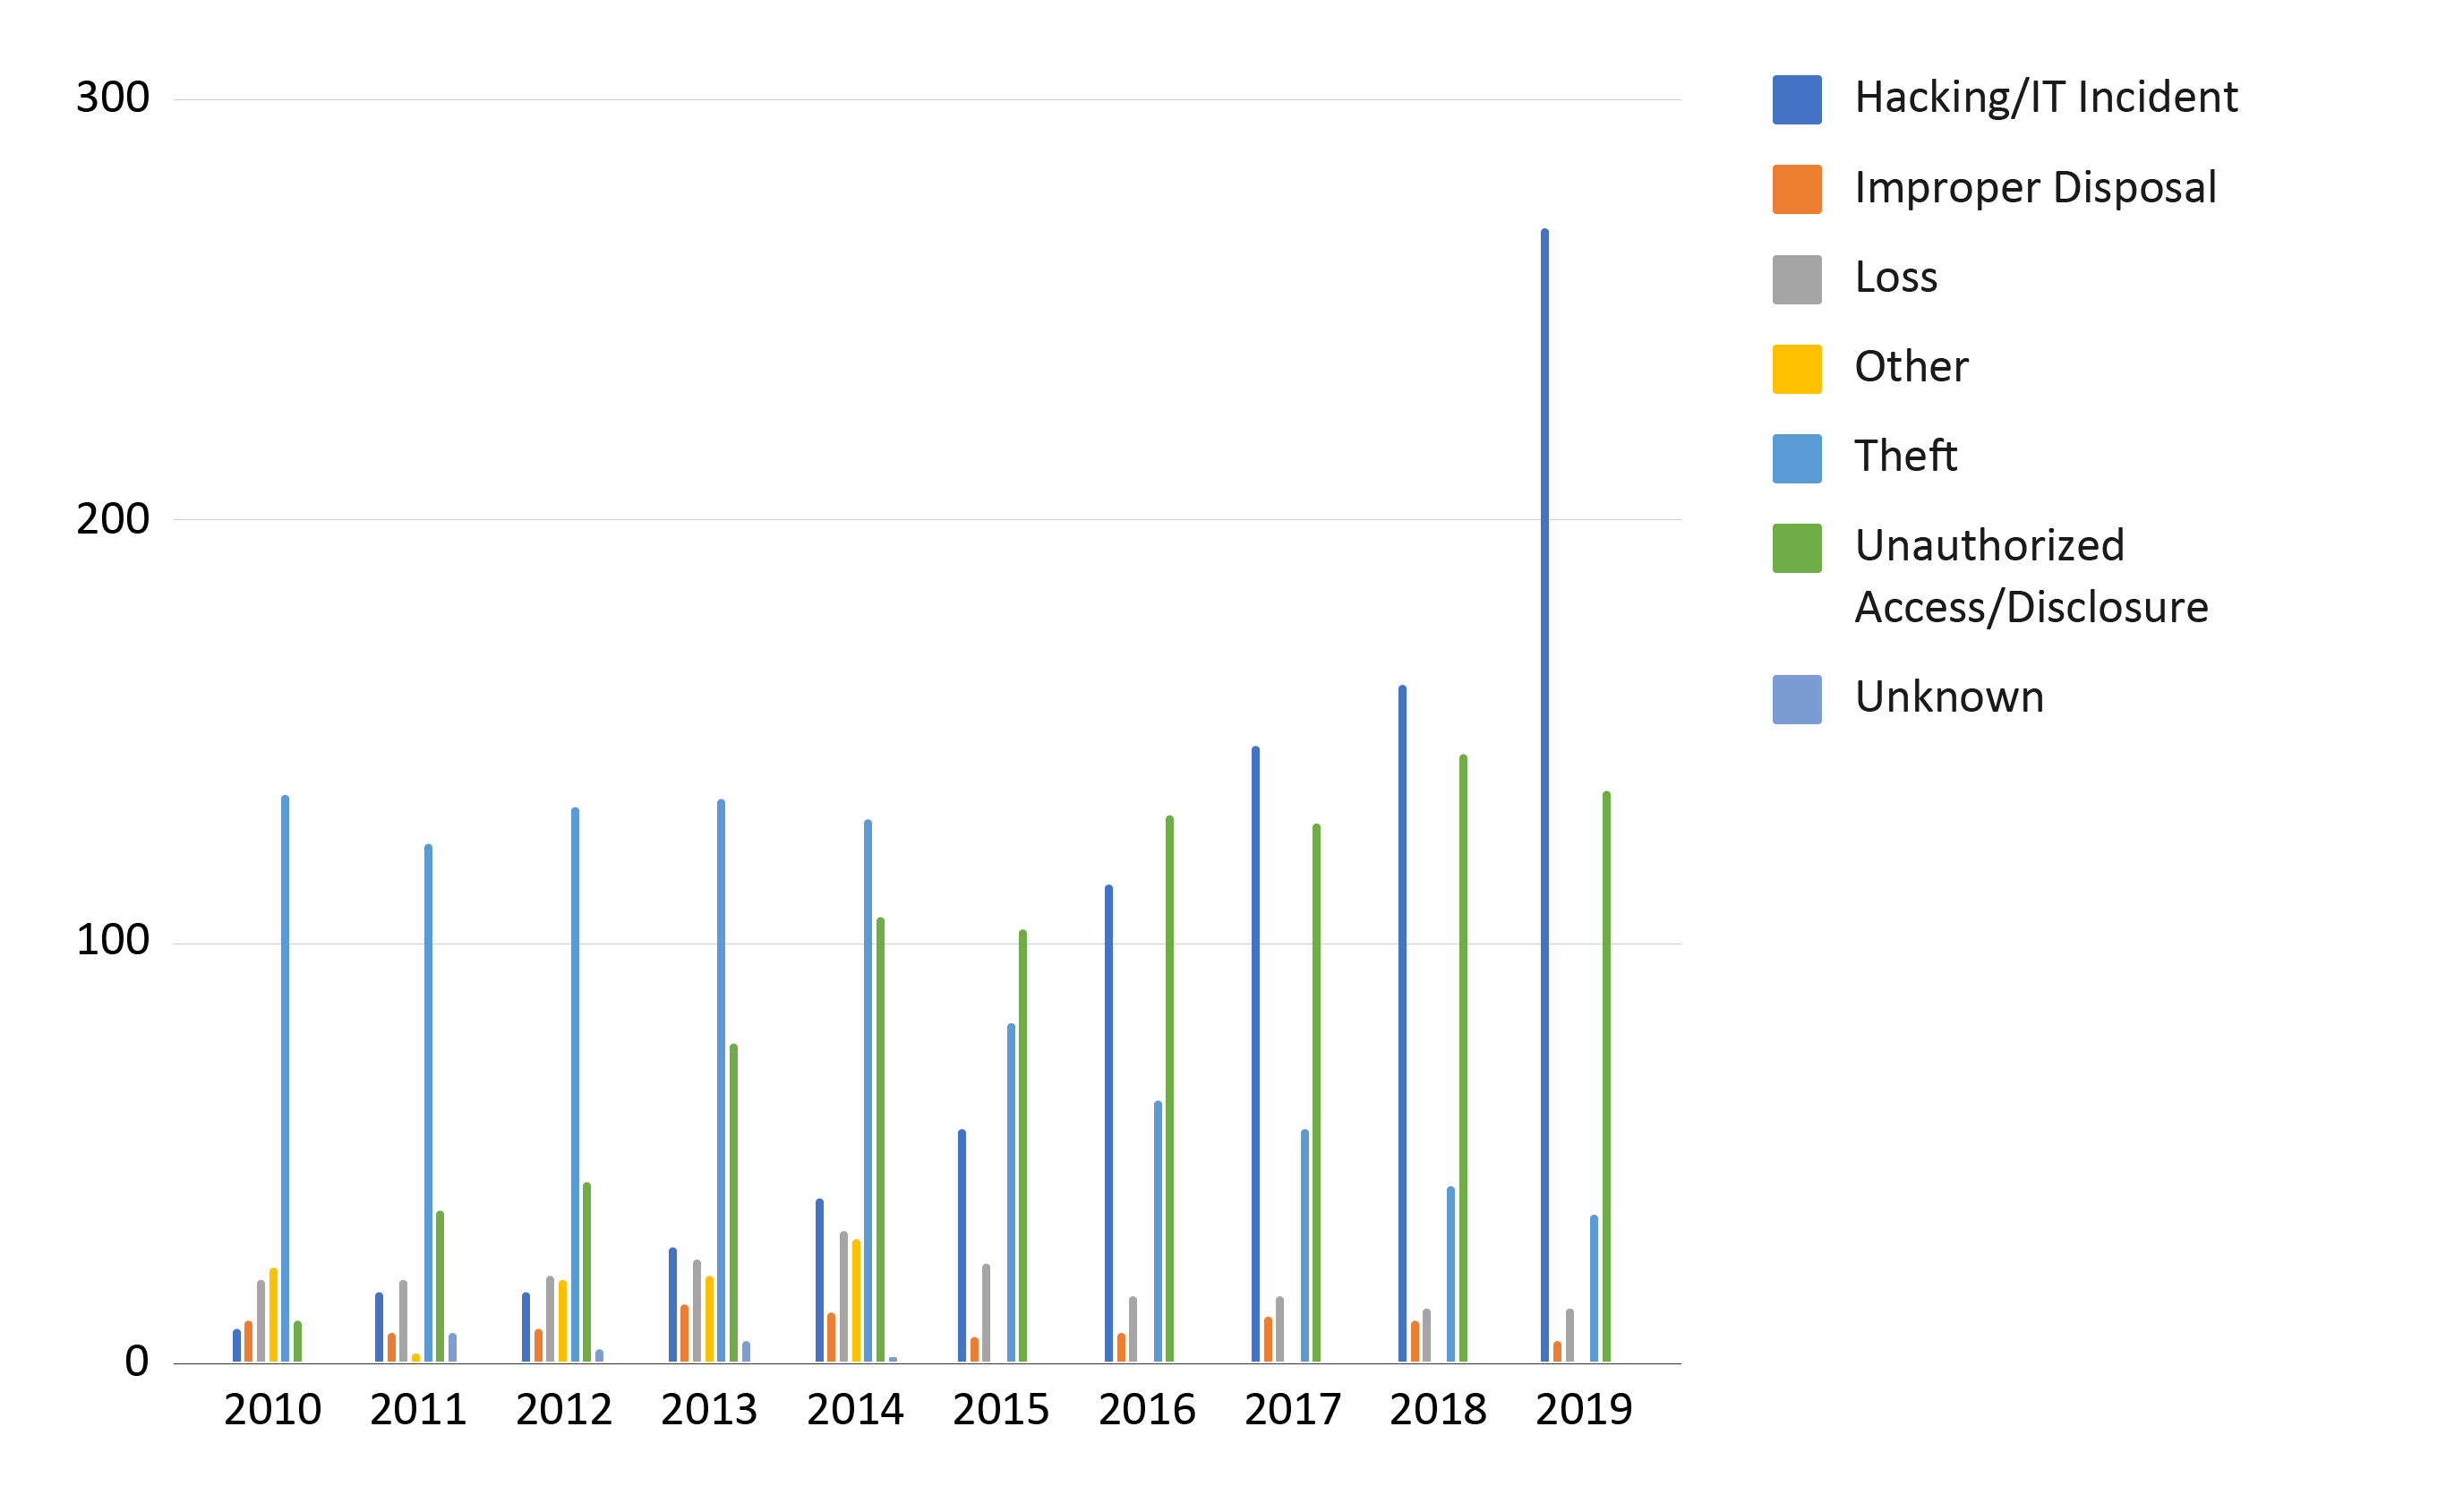 All Breach Types Over Time